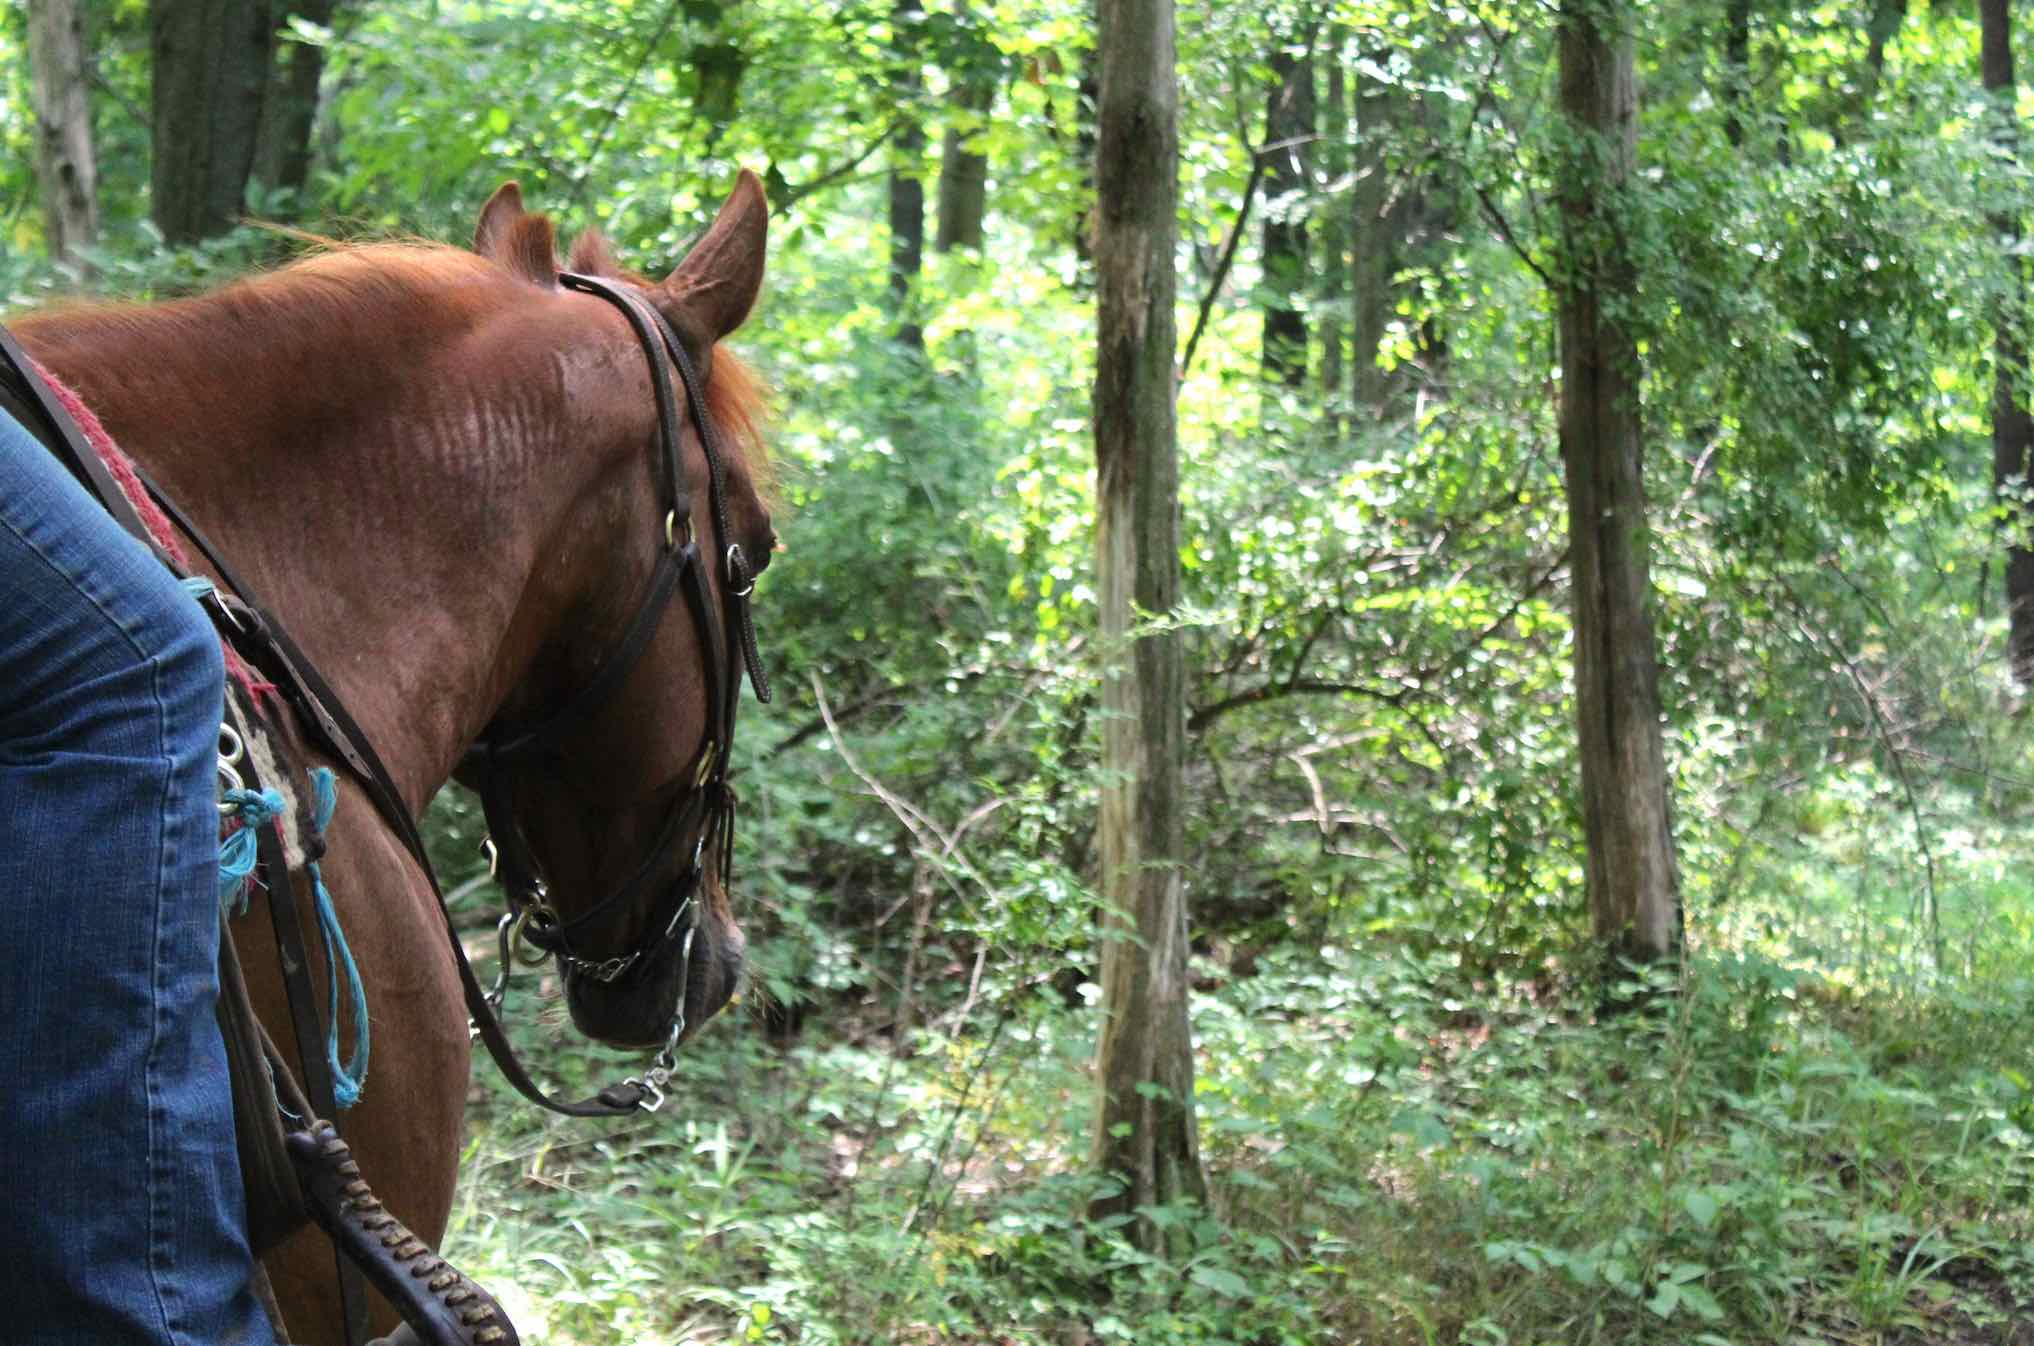 view from side of horse seeing just horse face and looking into woods on trail